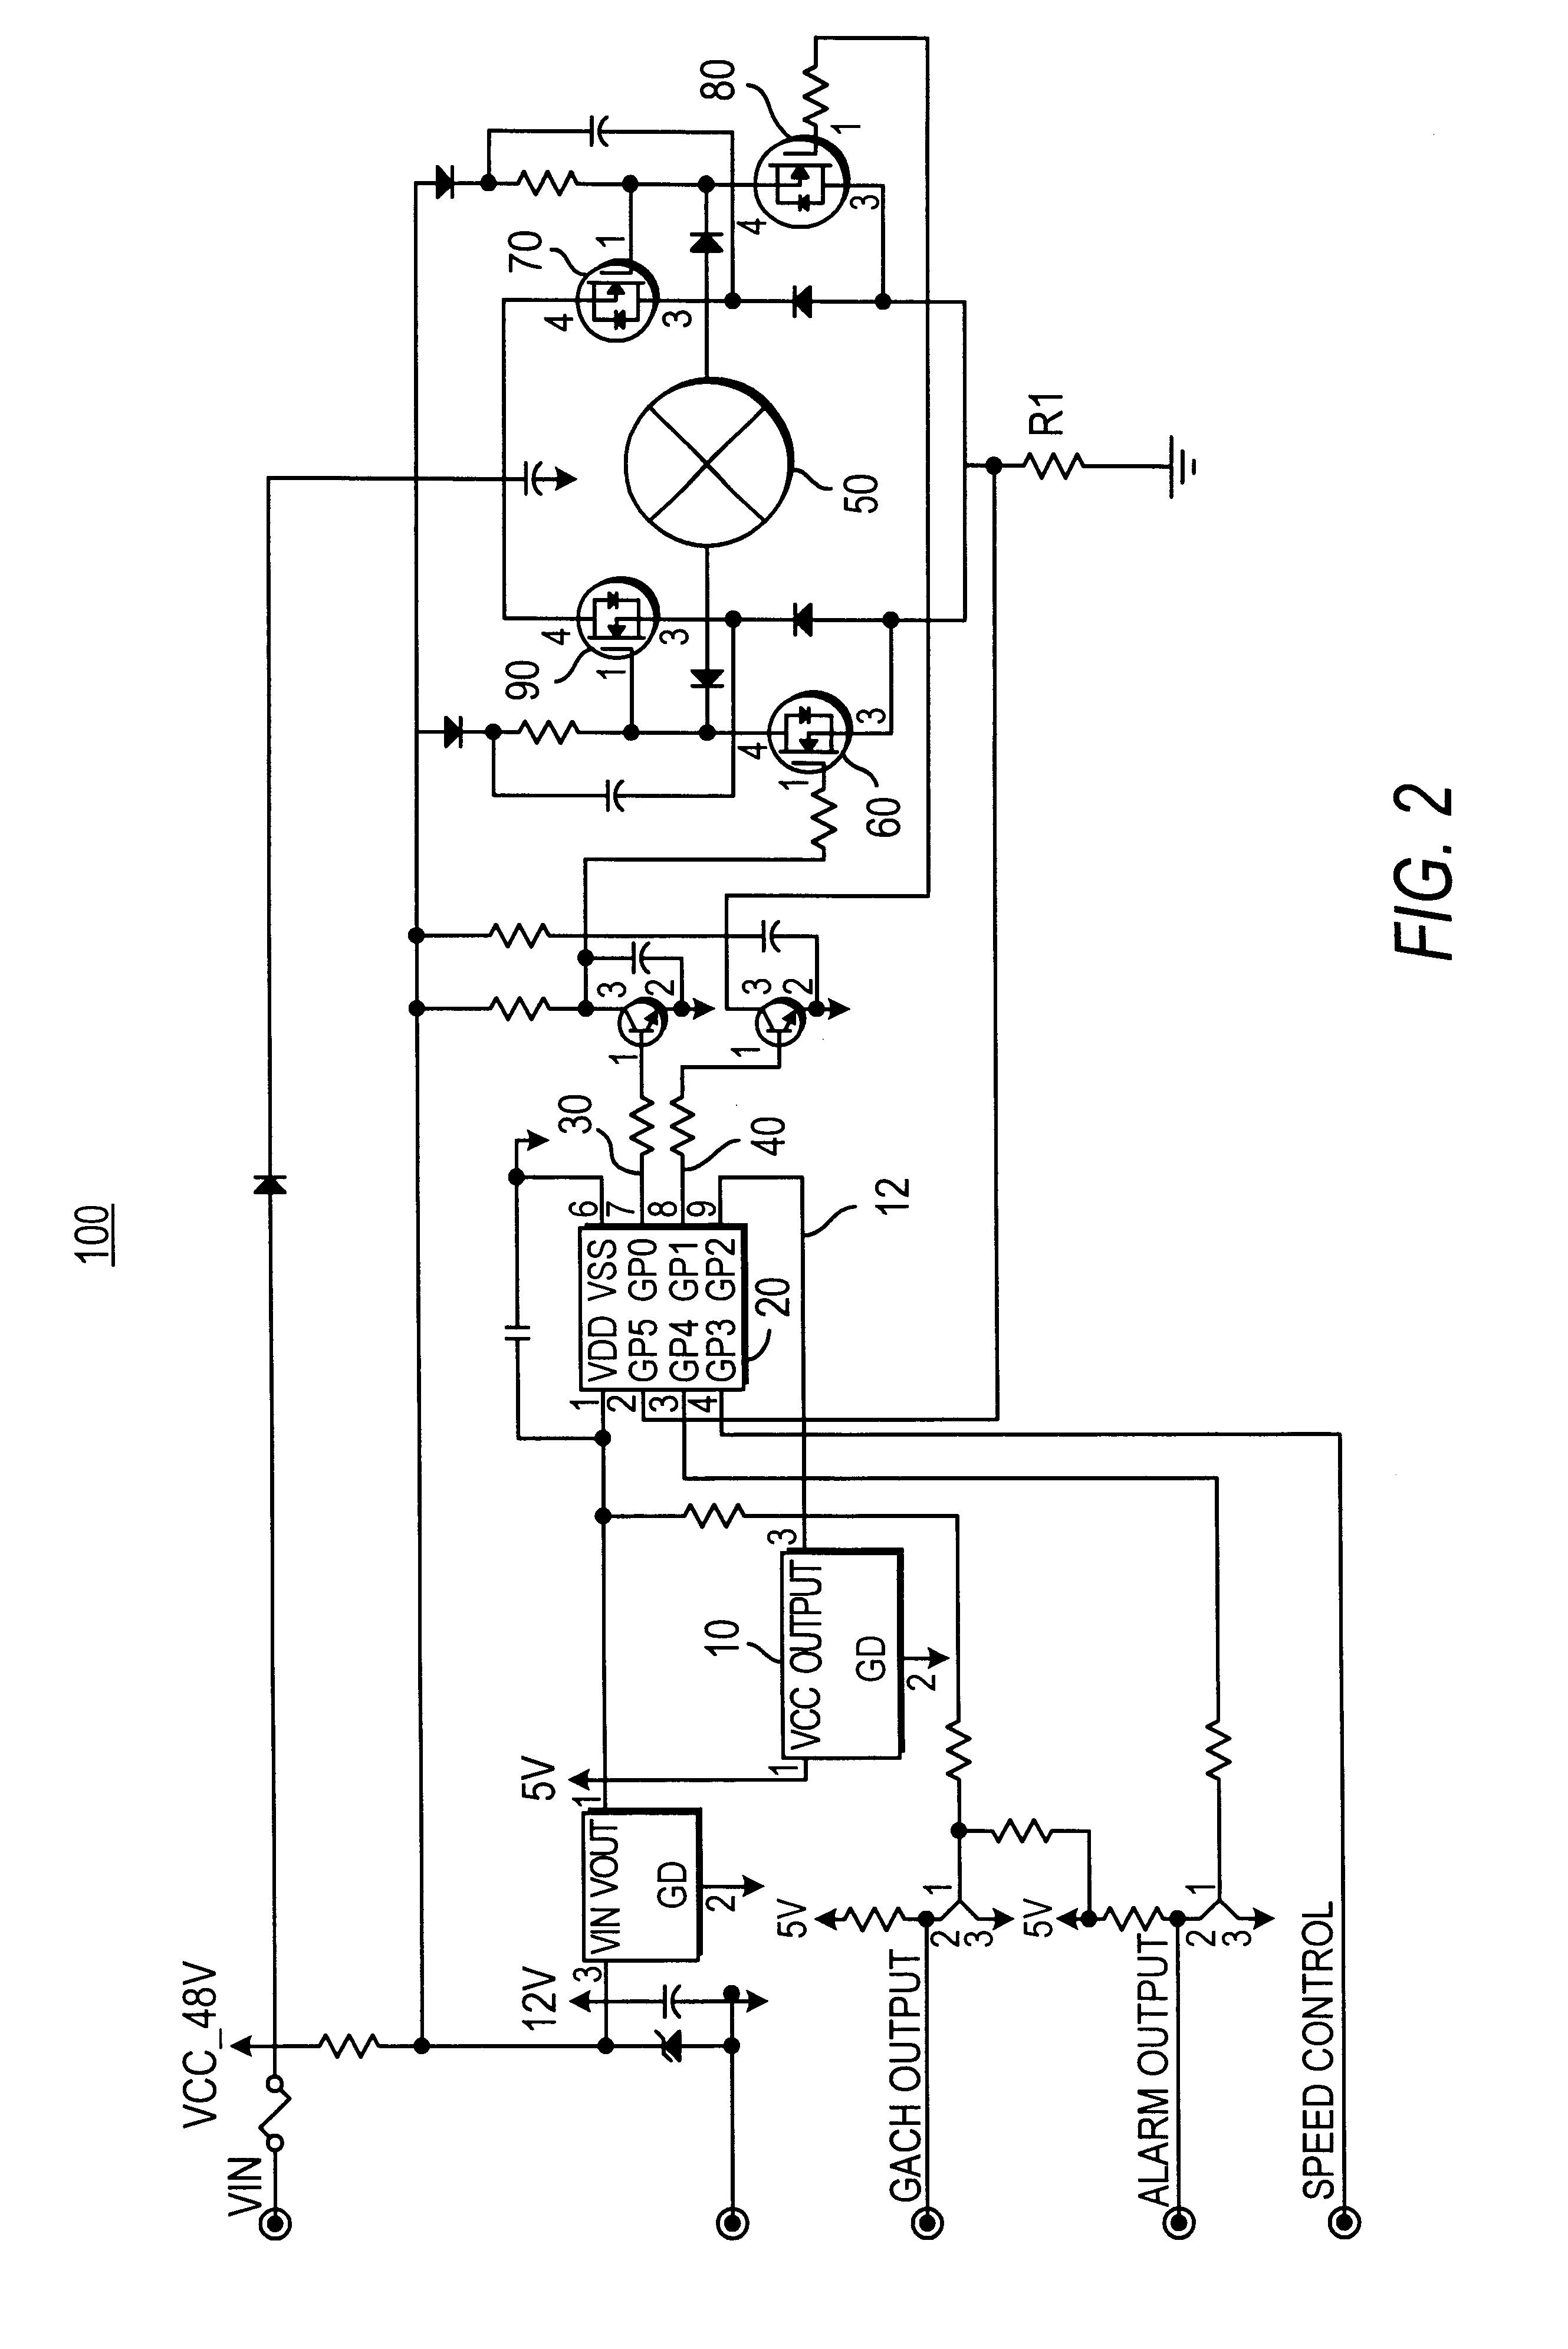 Jumper Cables Diagram Best Parallel Wiring Diagram Diagram Of Jumper Cables Diagram